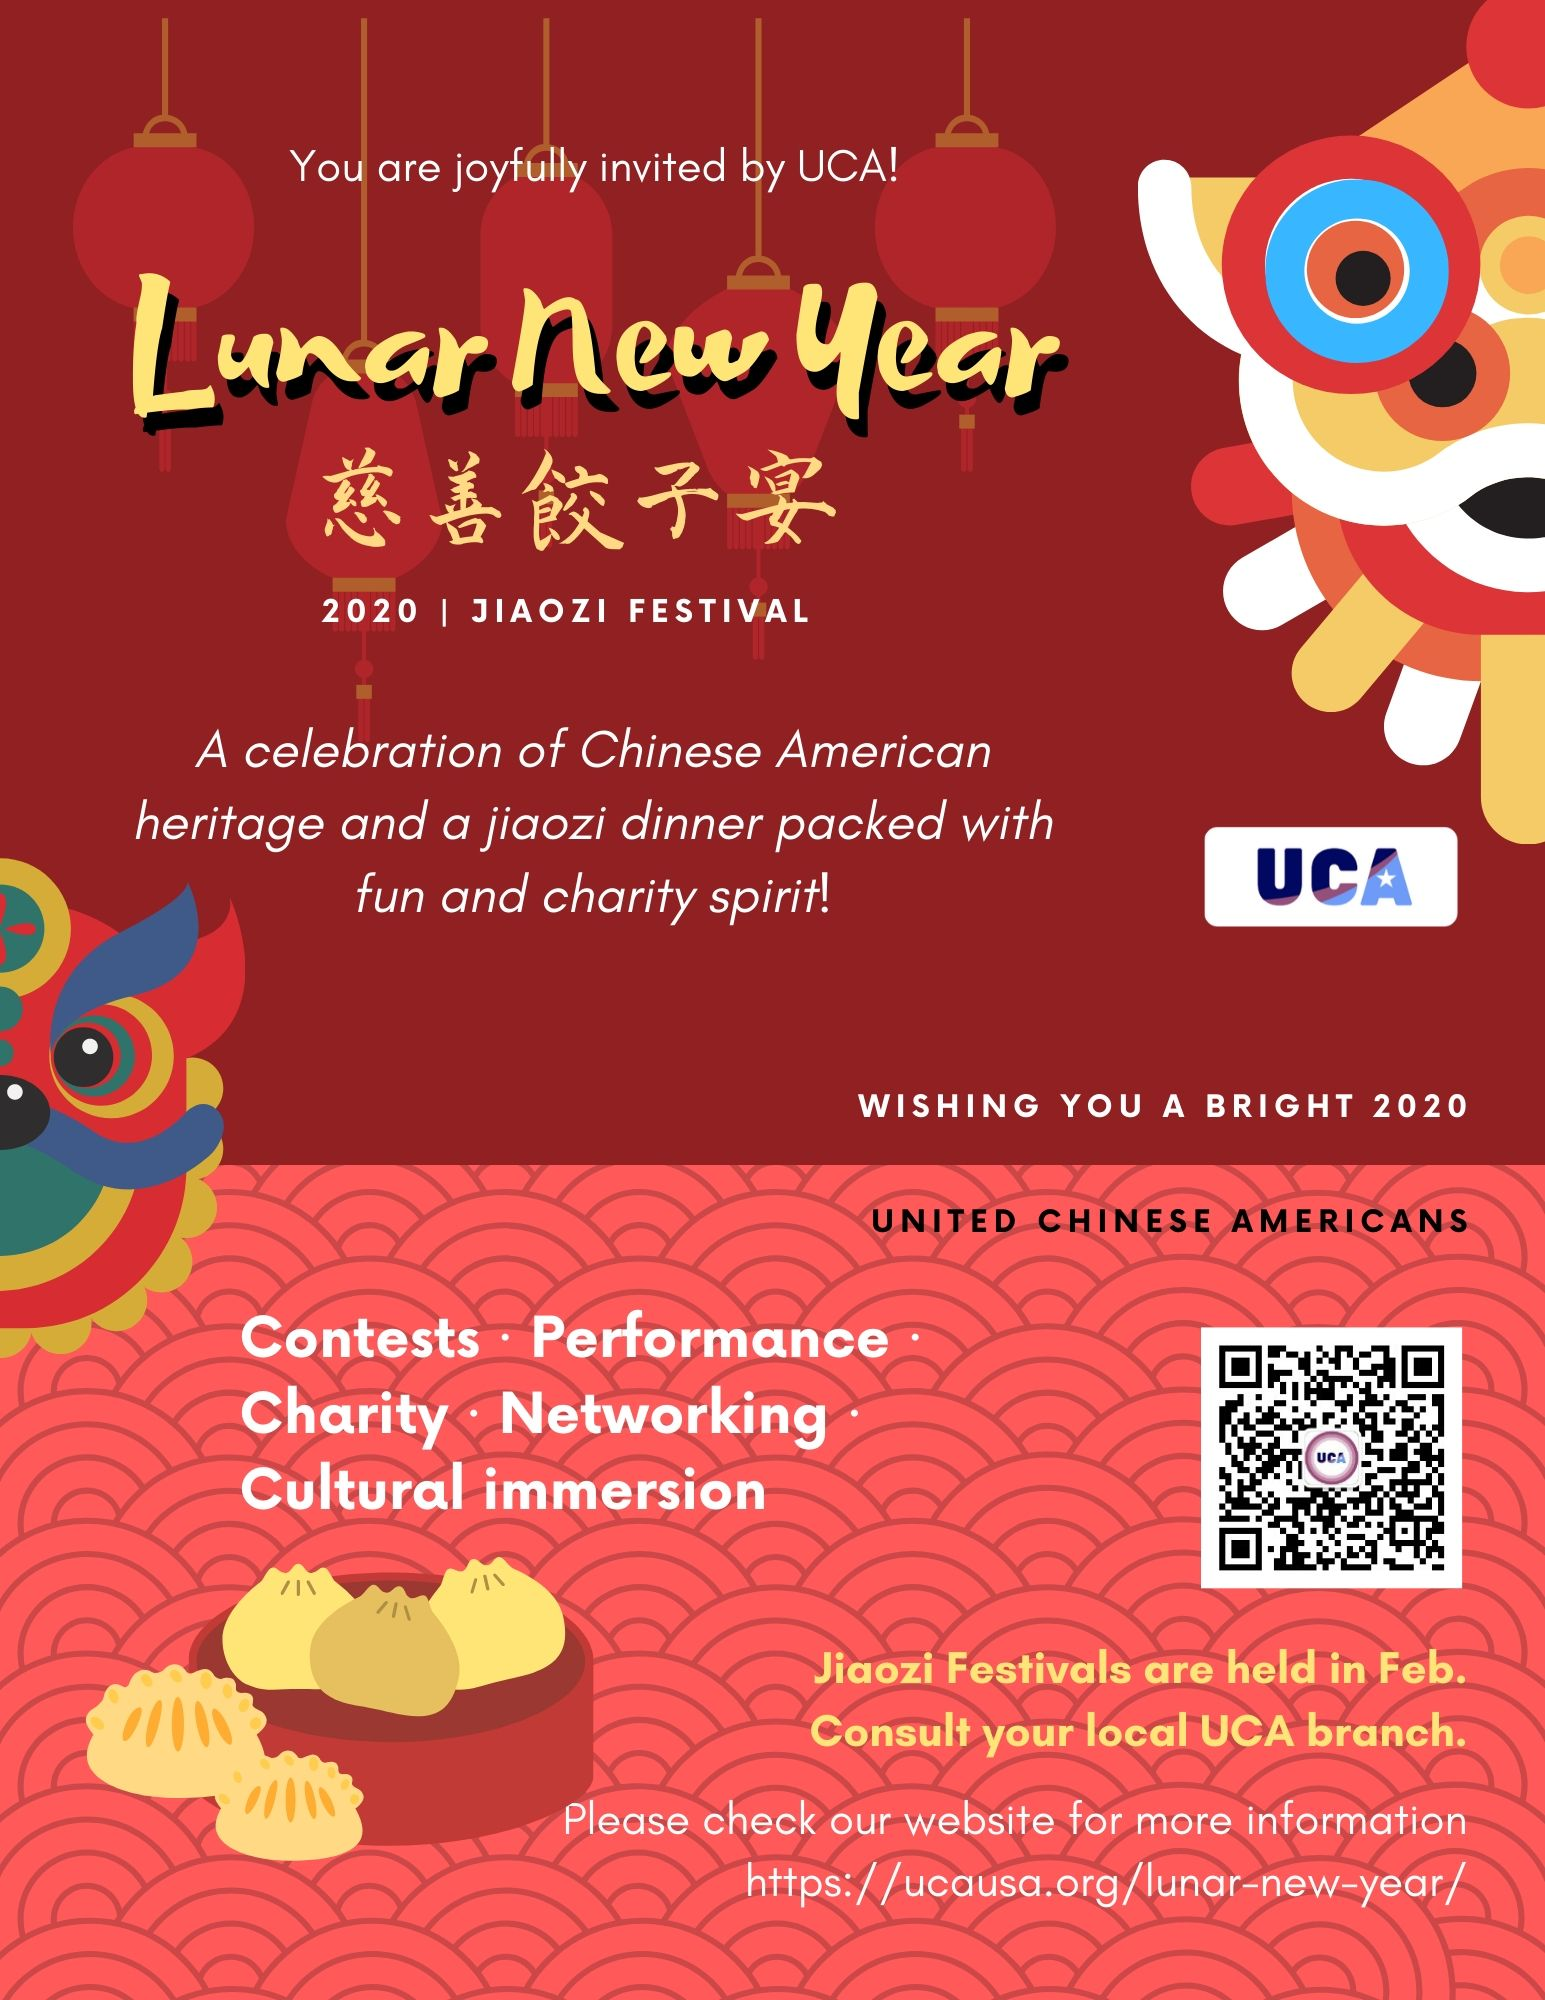 Lunar New Year Initiatives